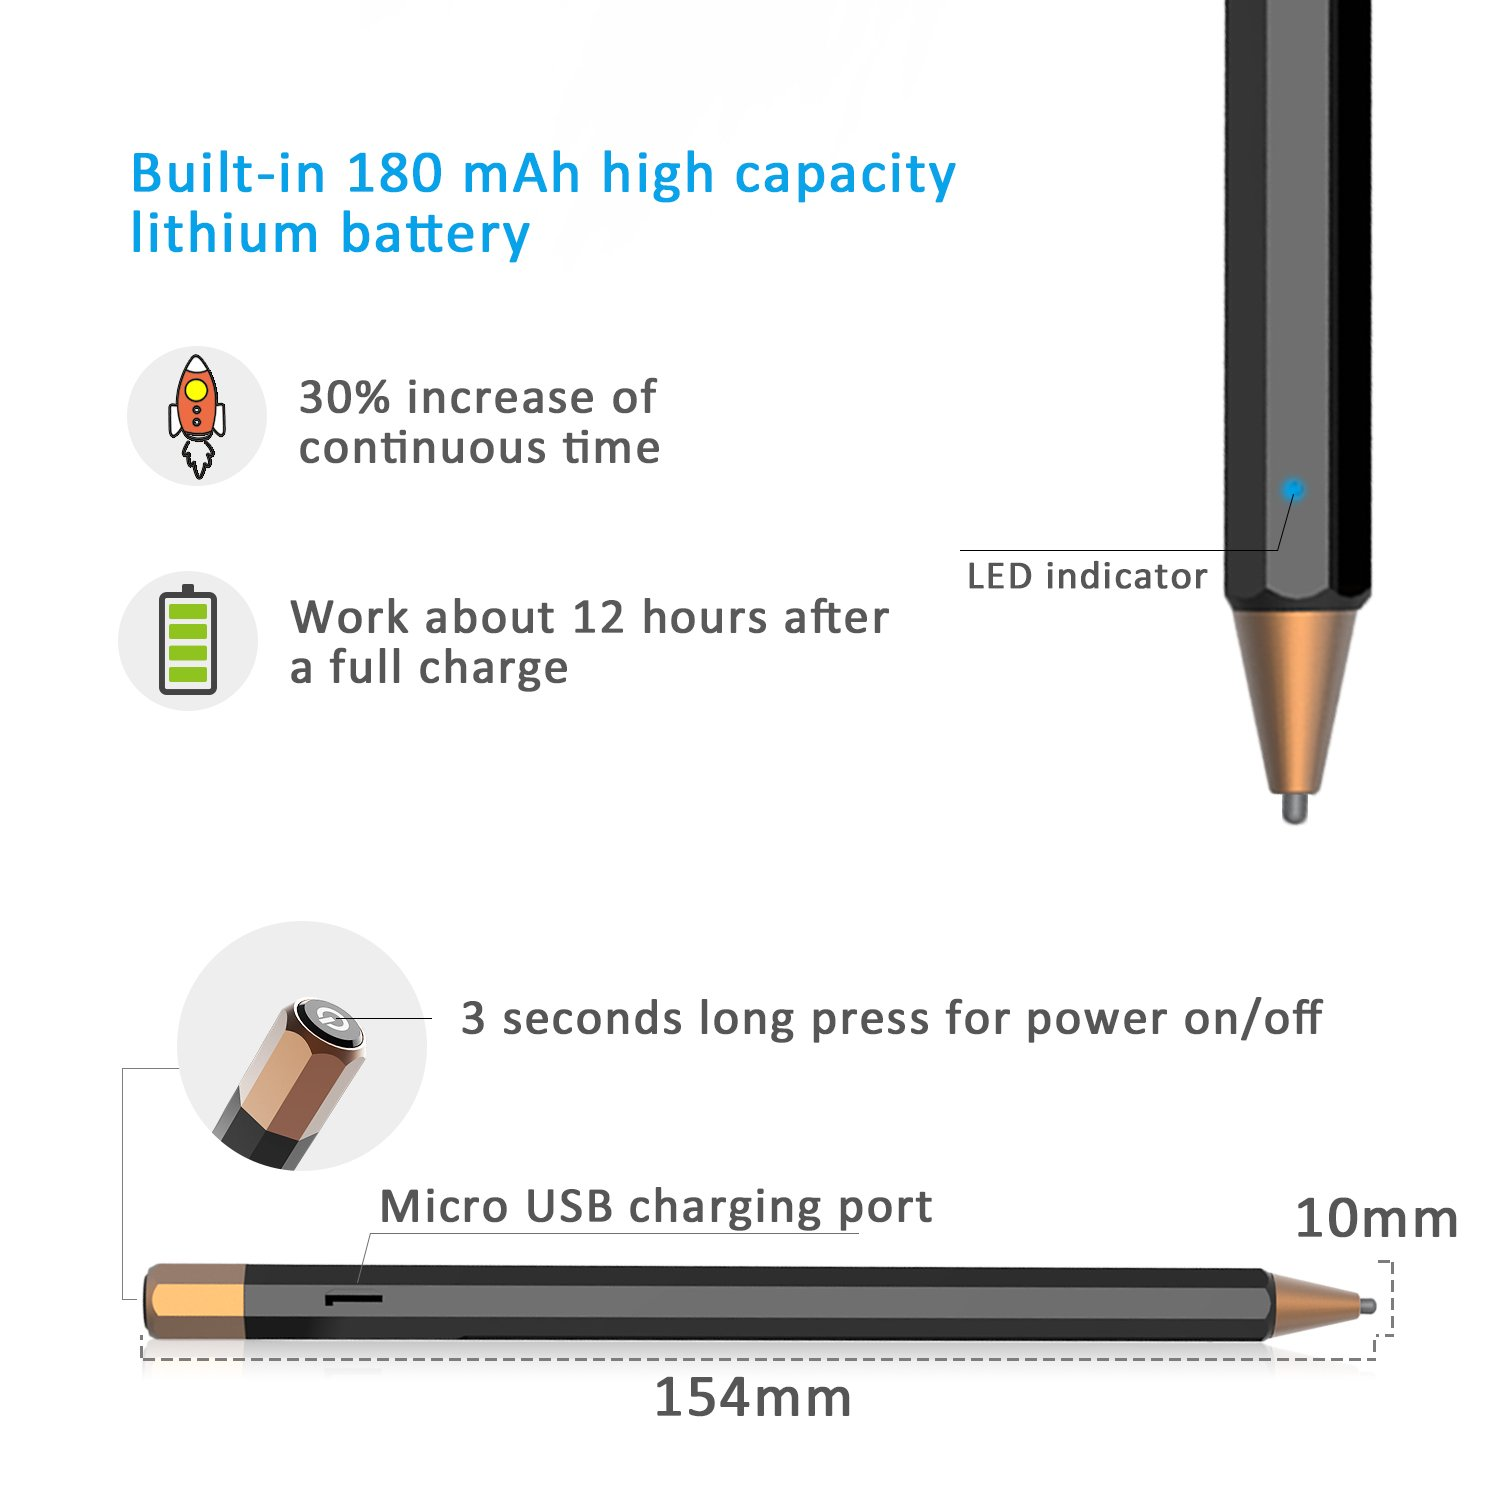 Abida Stylus for iPad, Touchscreen Pen with Fiber Fine Tip, Rechargeable, No Need App or Bluetooth for iOS Devices, Especially for Apple Devices Such as iPad, iPhone, iPad Pro - Brown by Abida (Image #6)